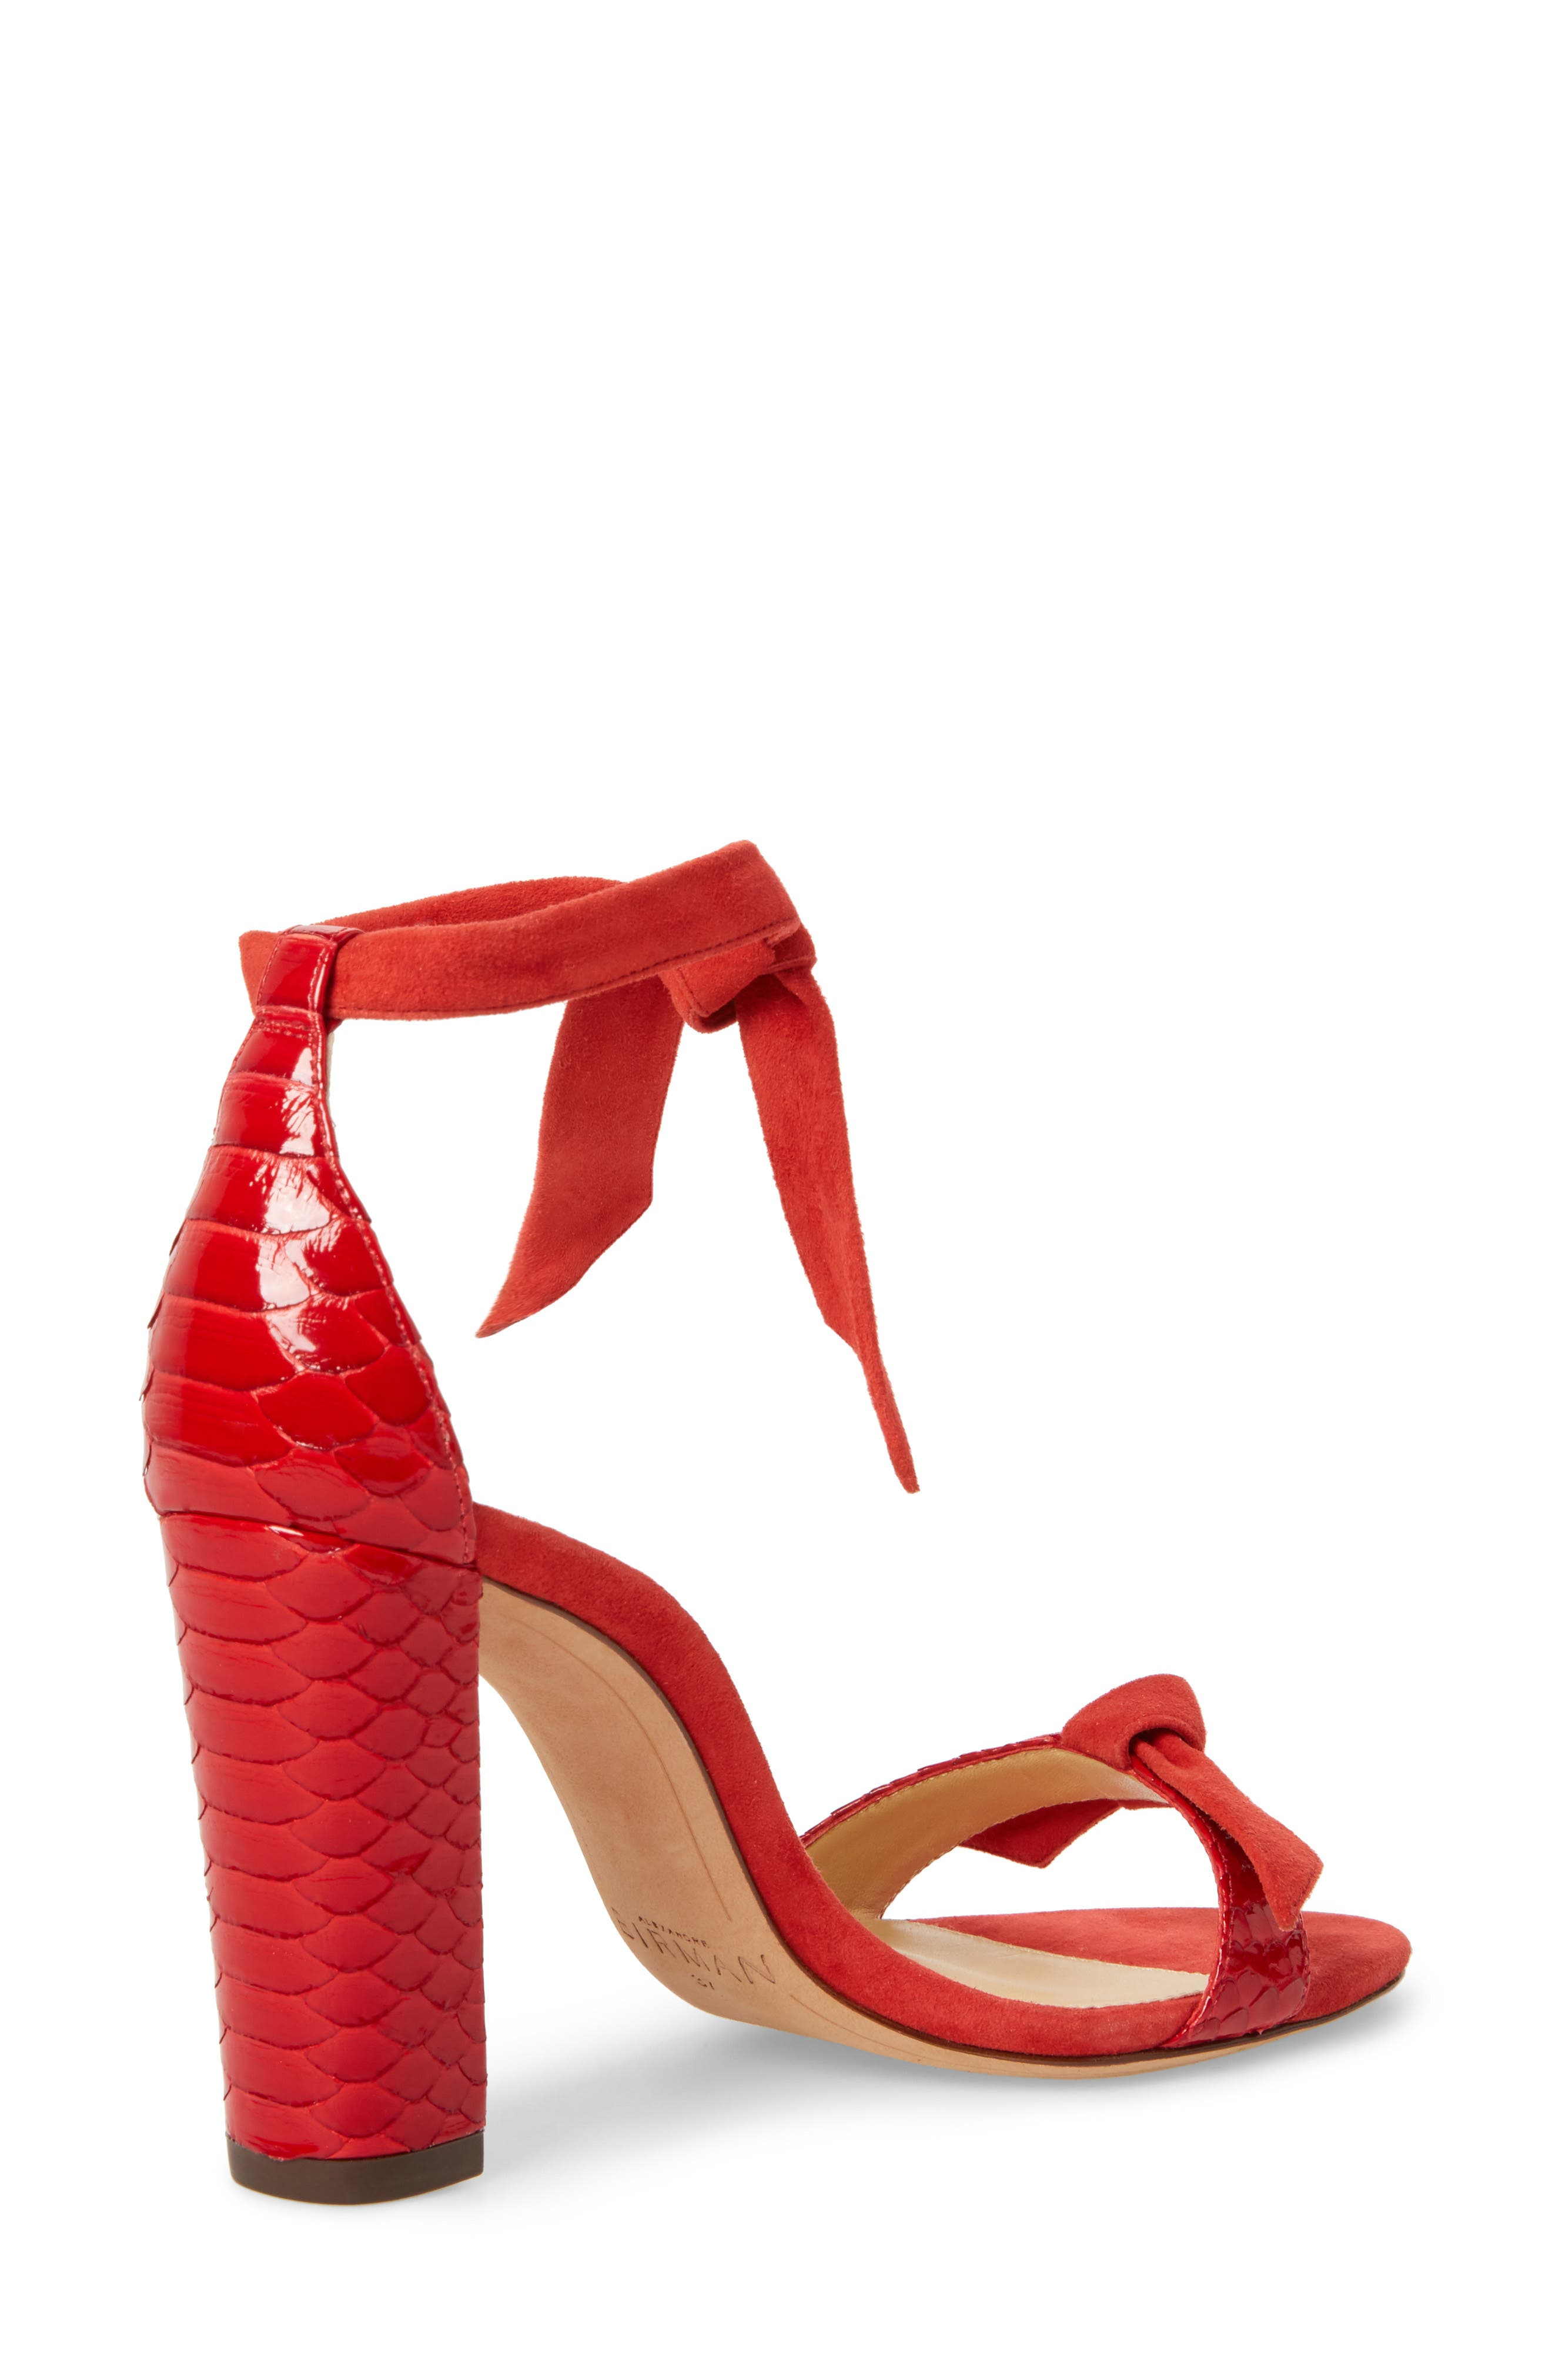 Clarita Genuine Python Ankle Tie Sandal,                             Alternate thumbnail 2, color,                             Flame Red